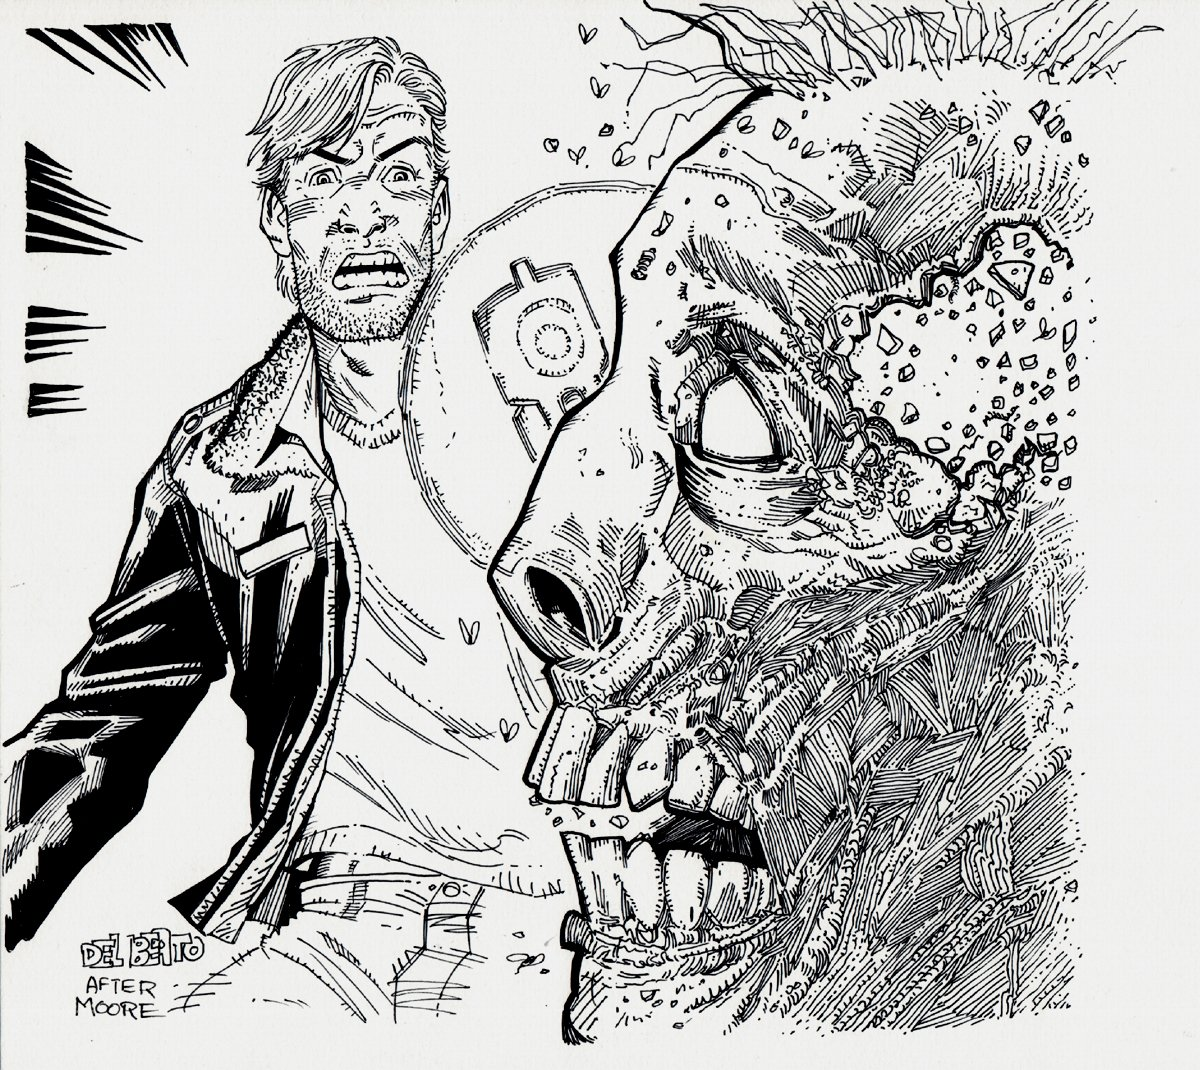 Walking Dead: Rick Grimes And Zombie!